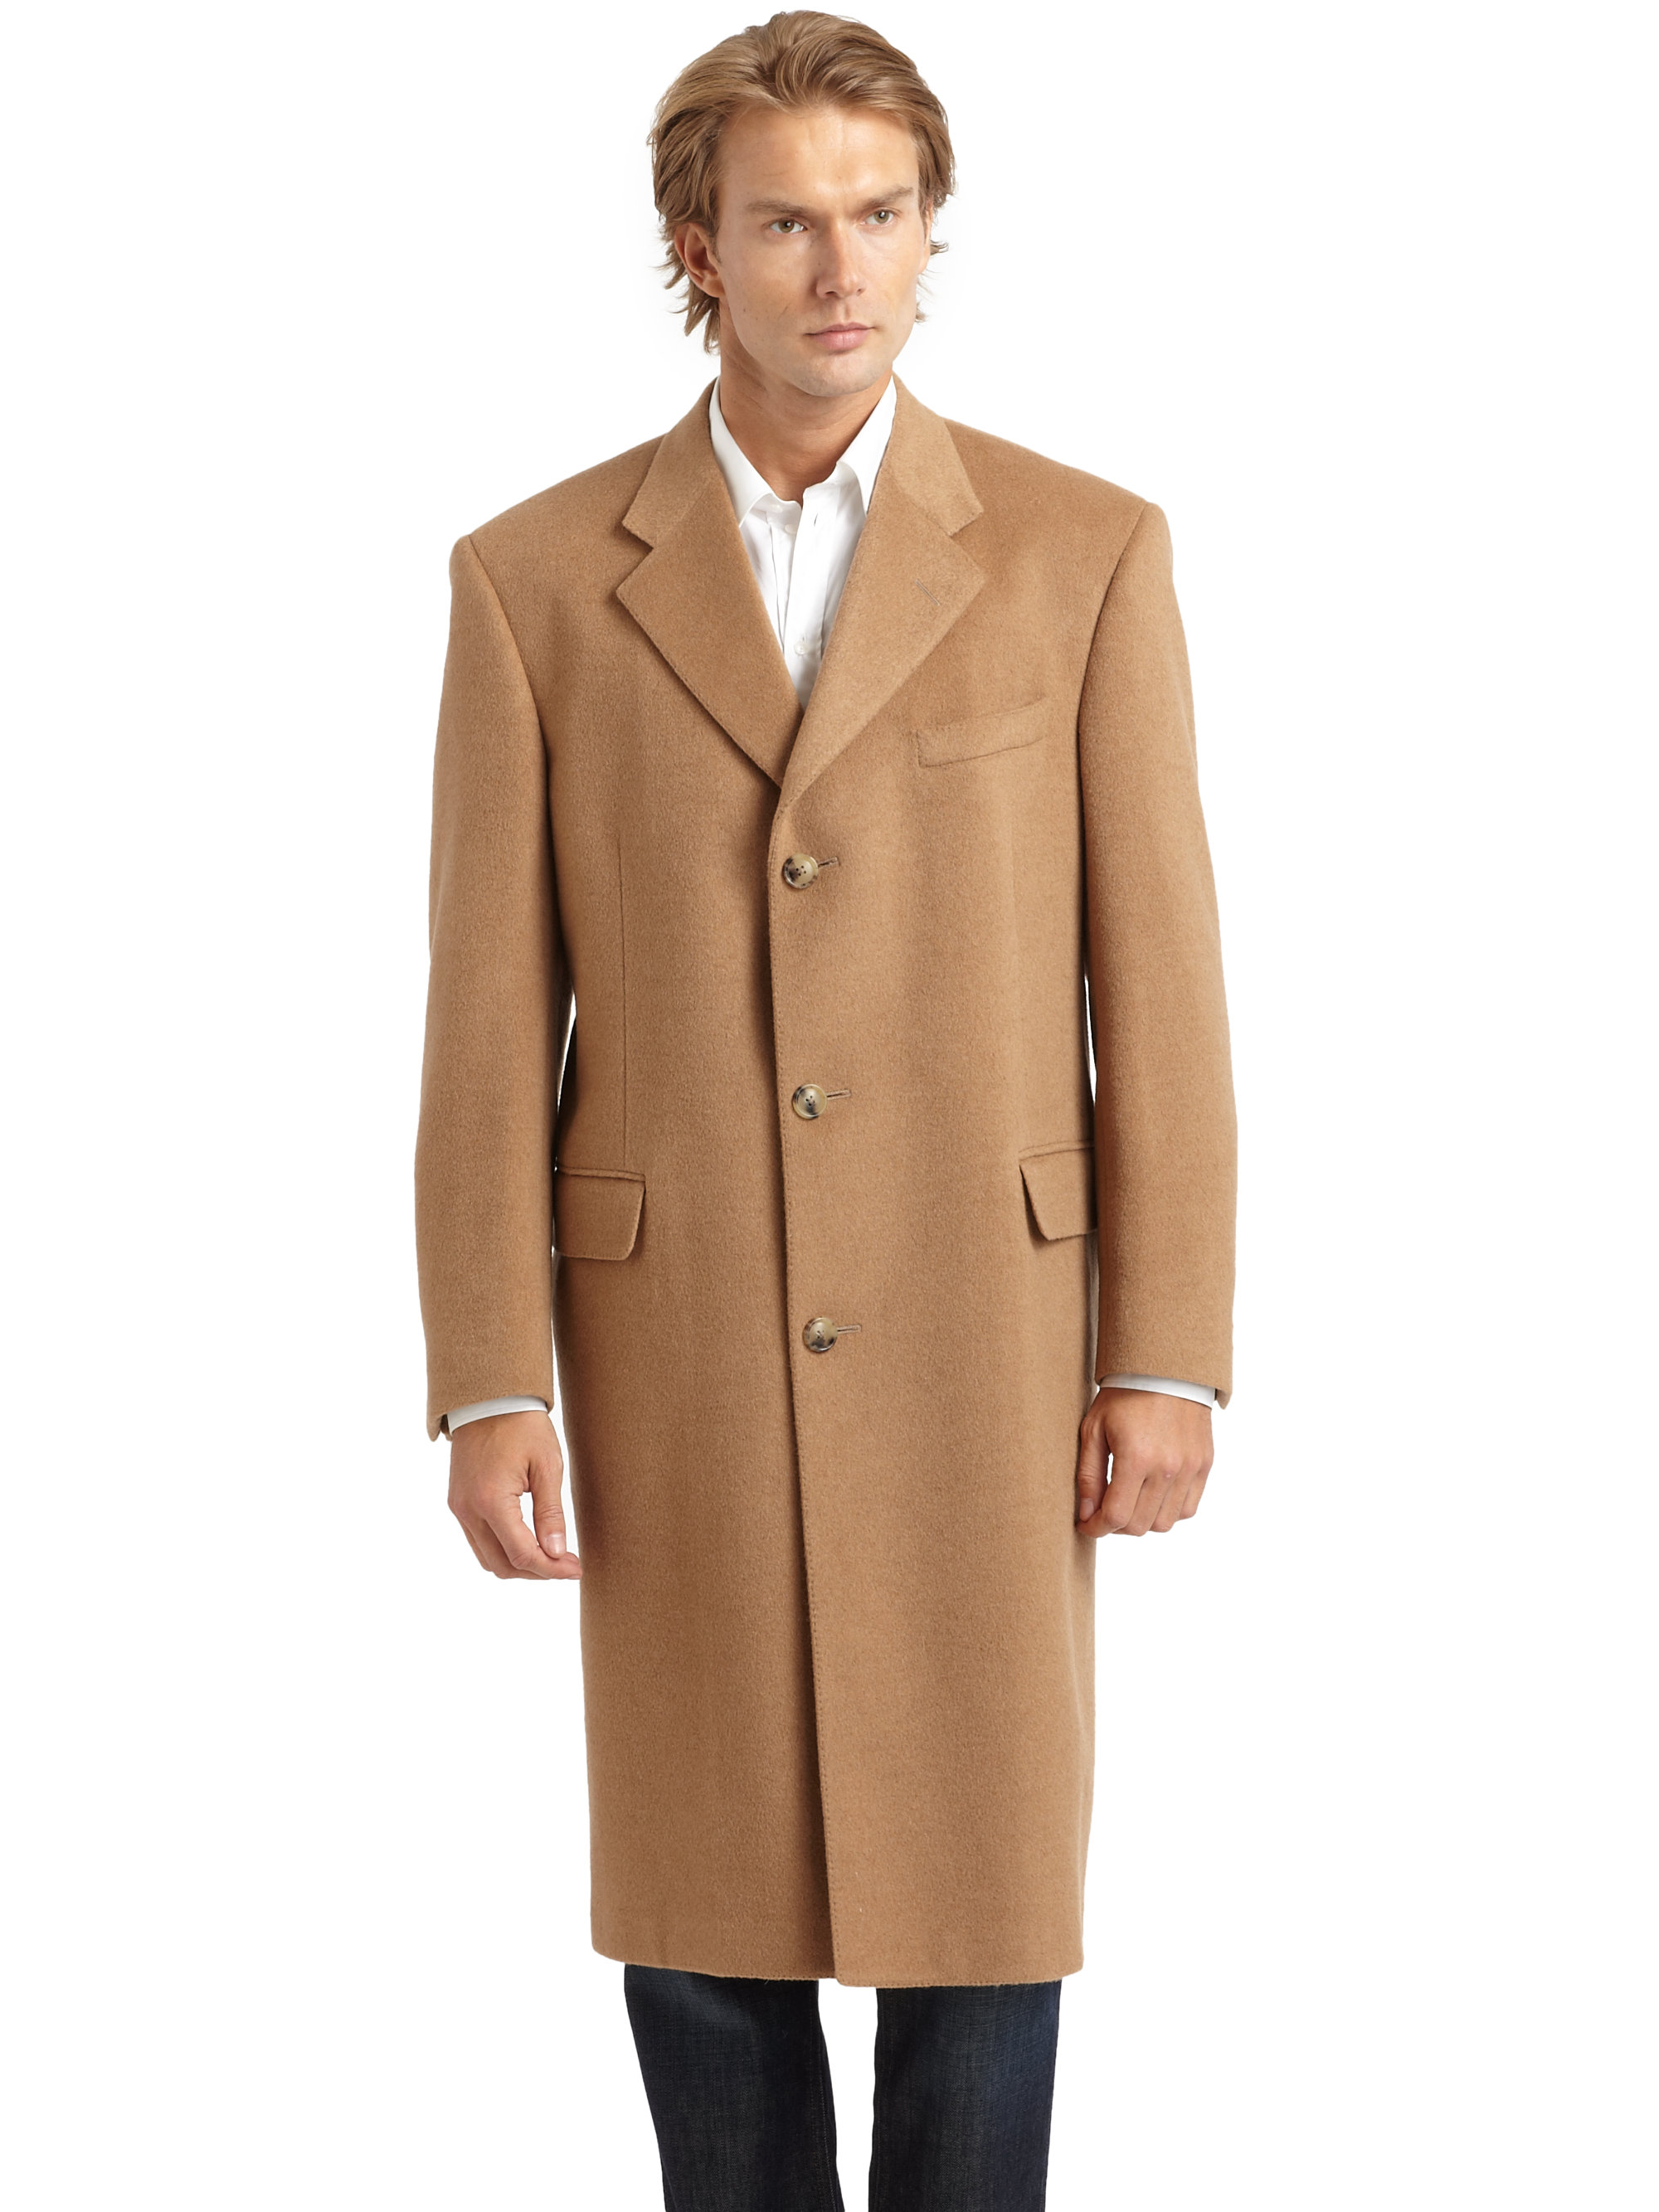 Hickey freeman Cashmere Flap Pocket Coat in Natural for Men | Lyst